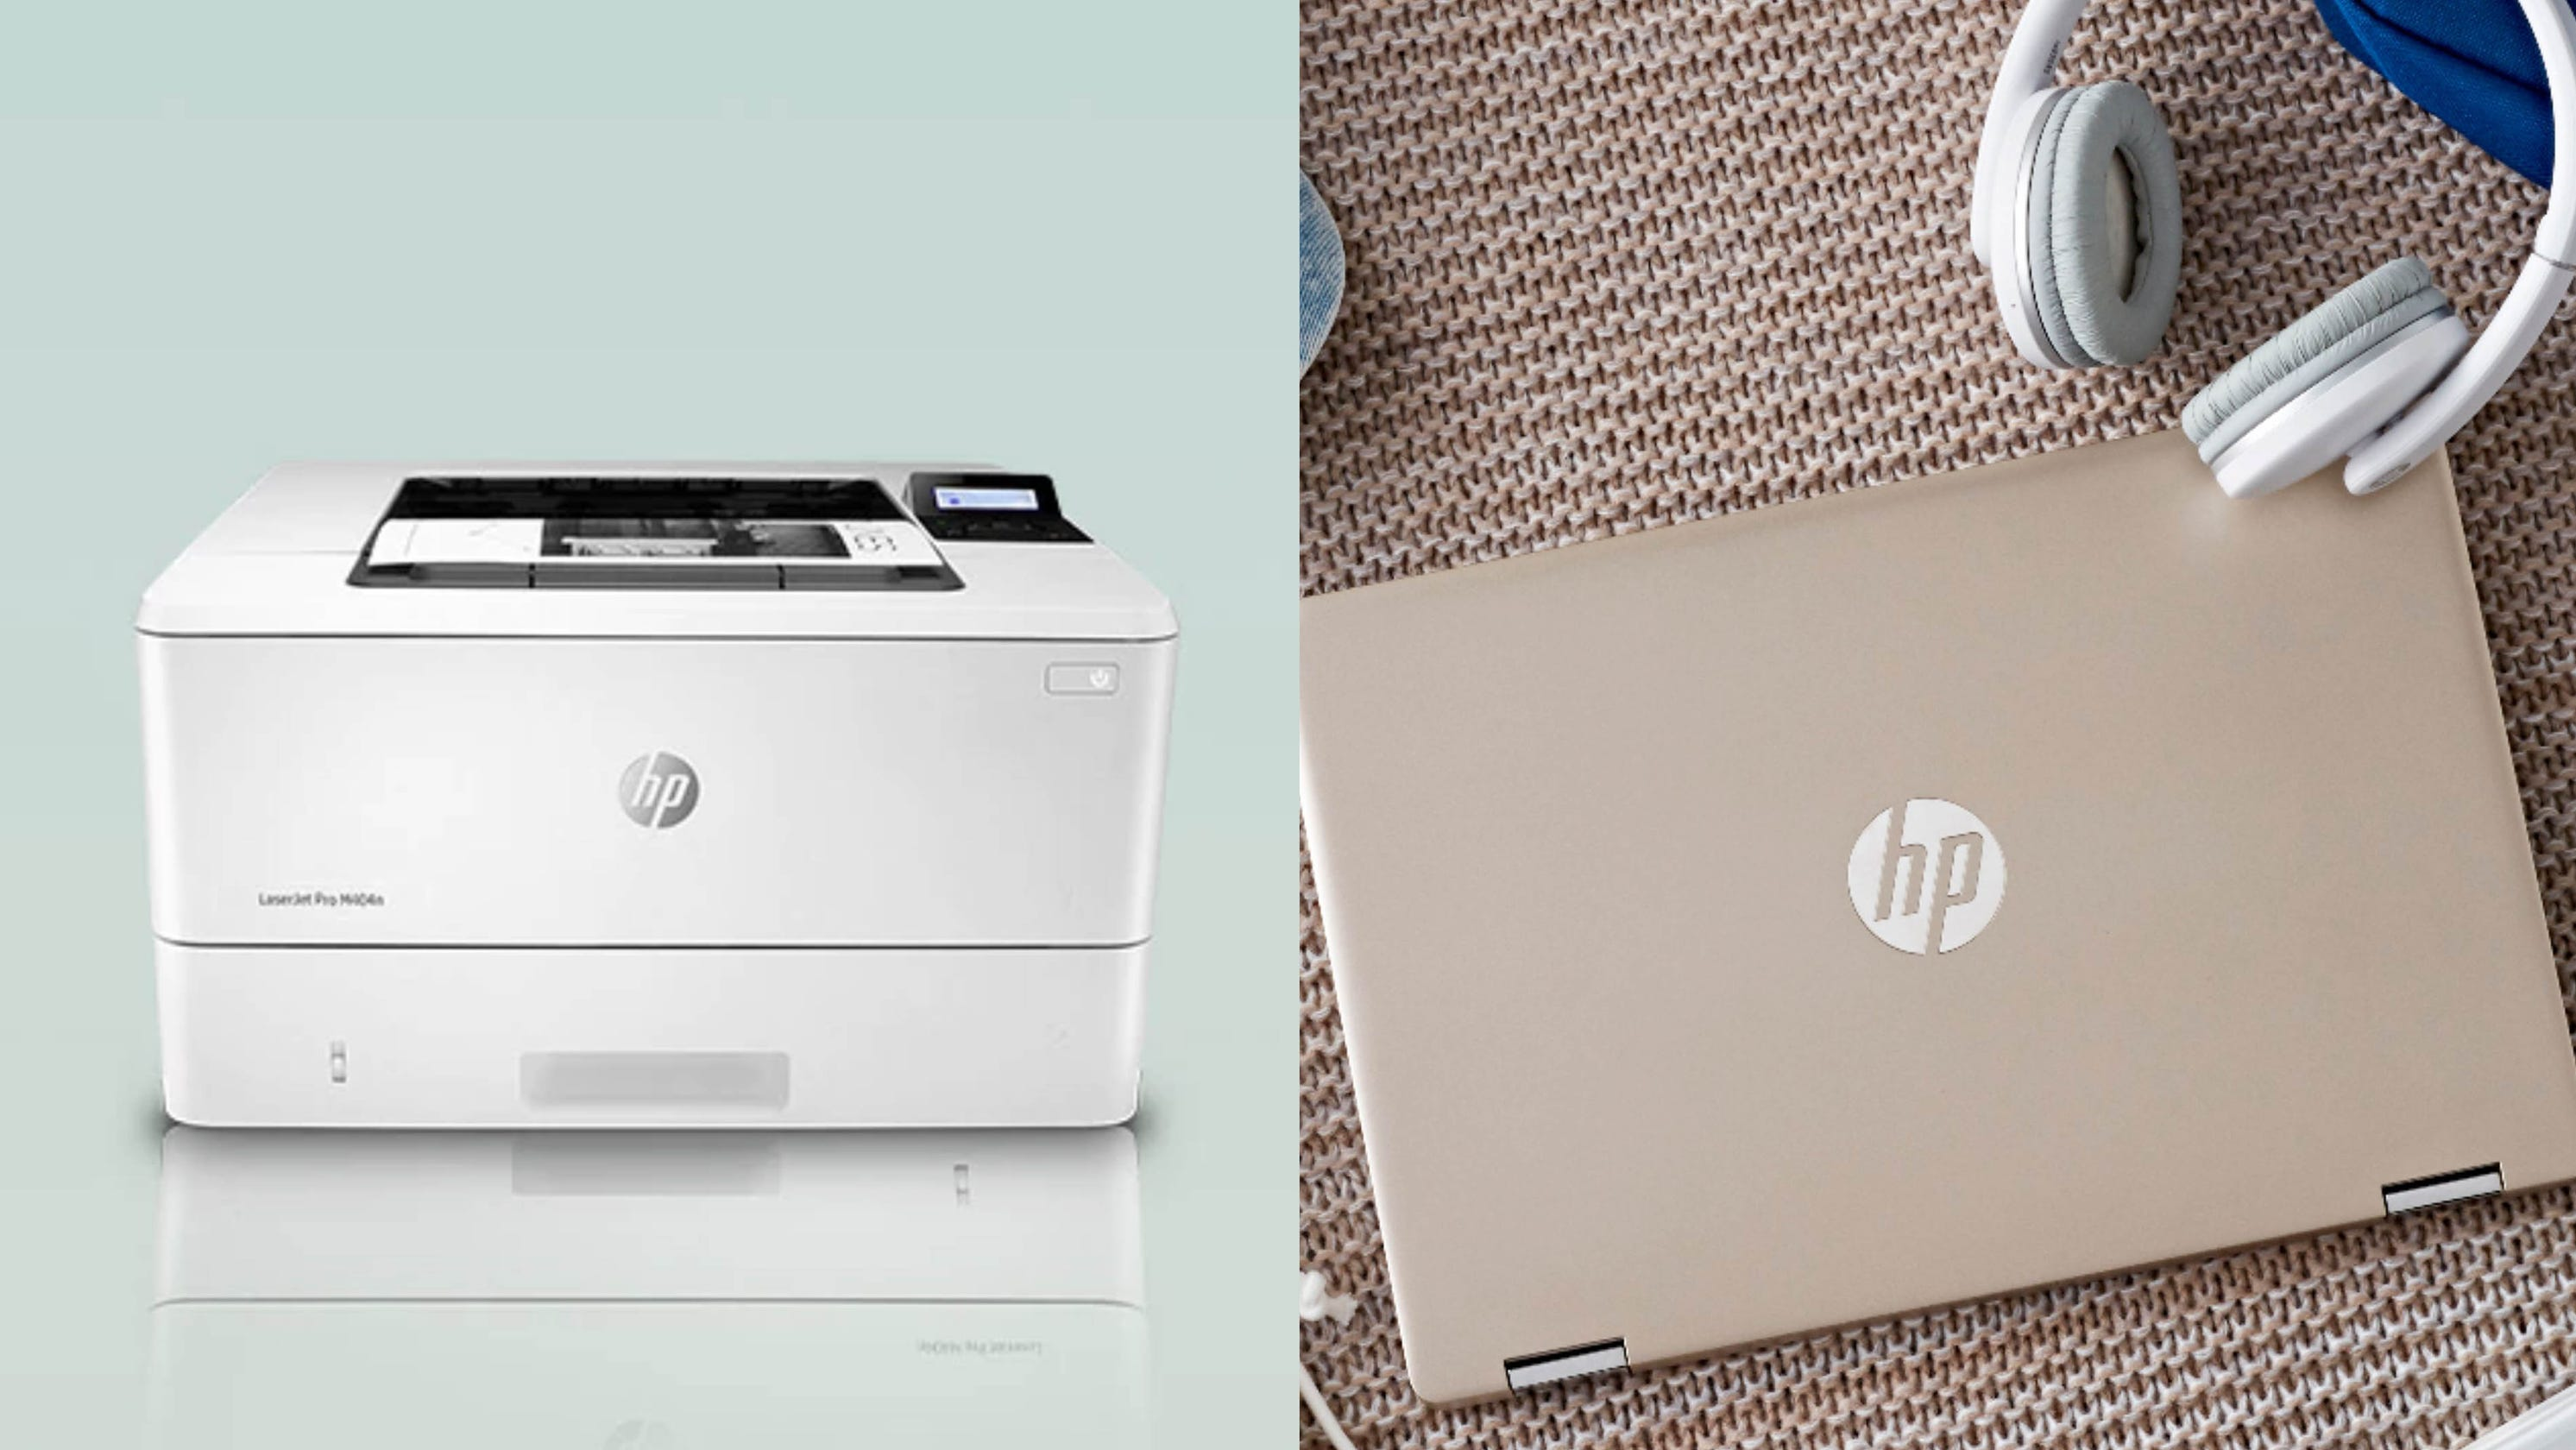 4th of July sales 2020: Get deals on HP laptops, PCs, printers and more